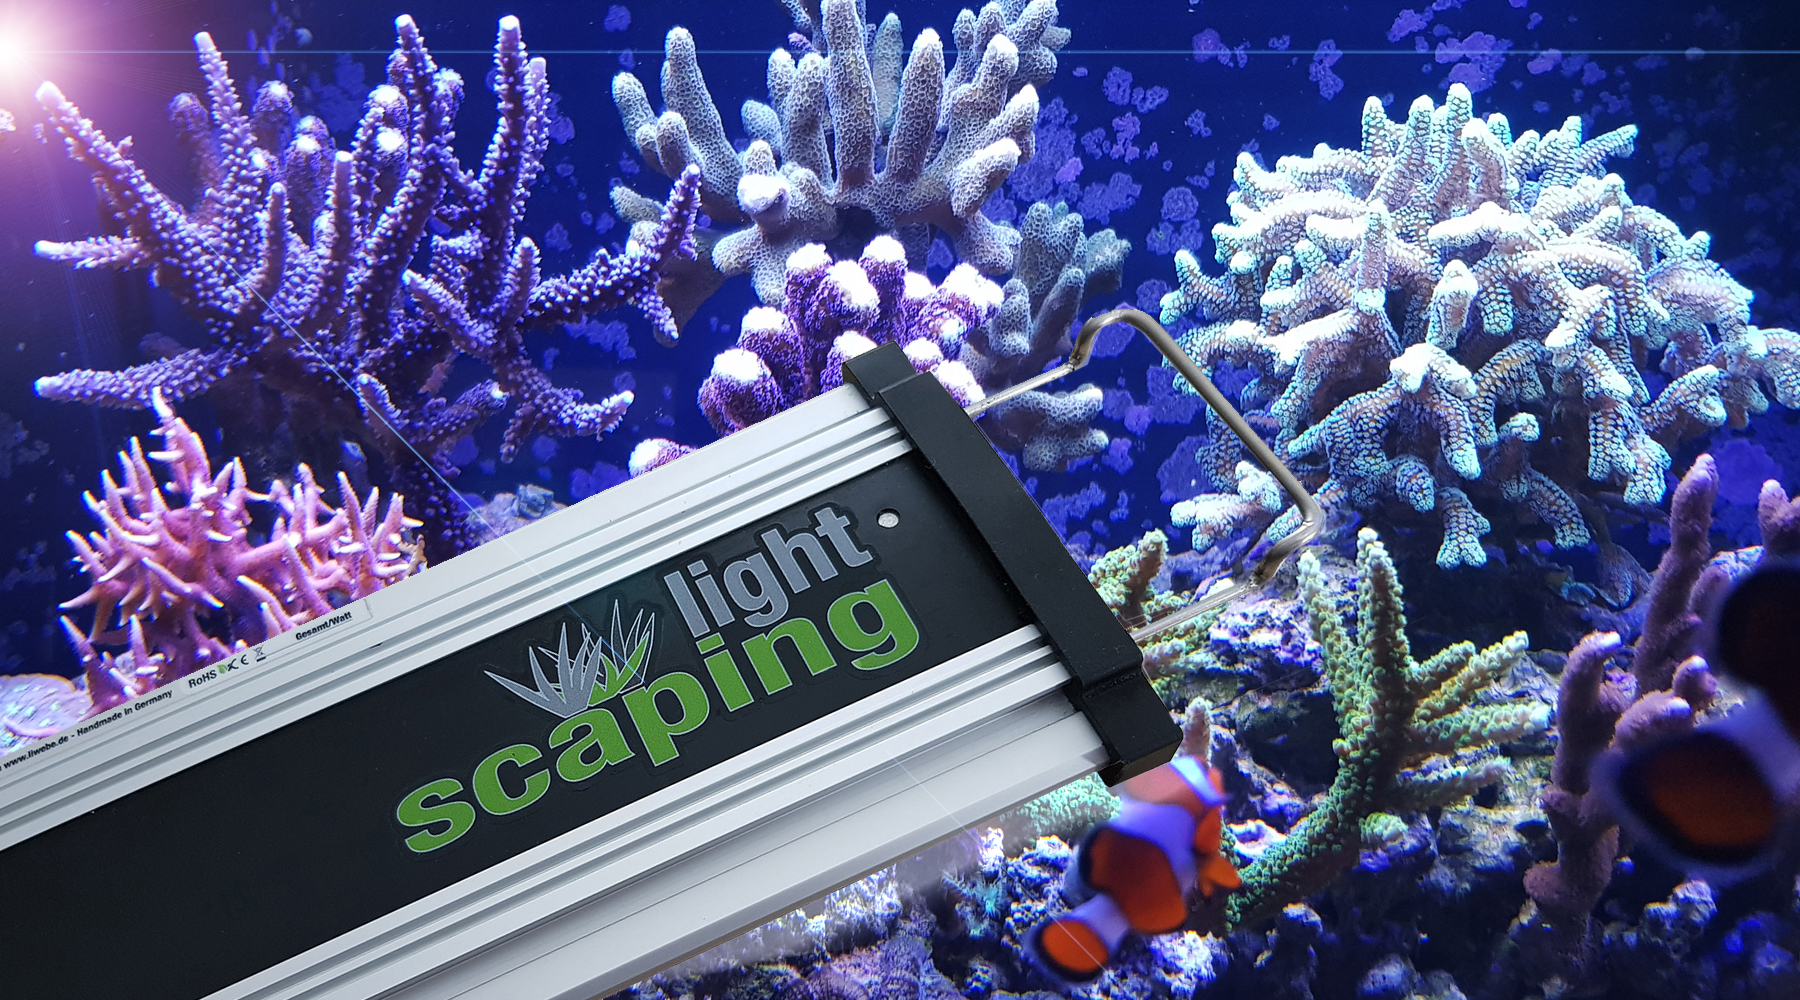 Scaping Light LED - Natutic UV